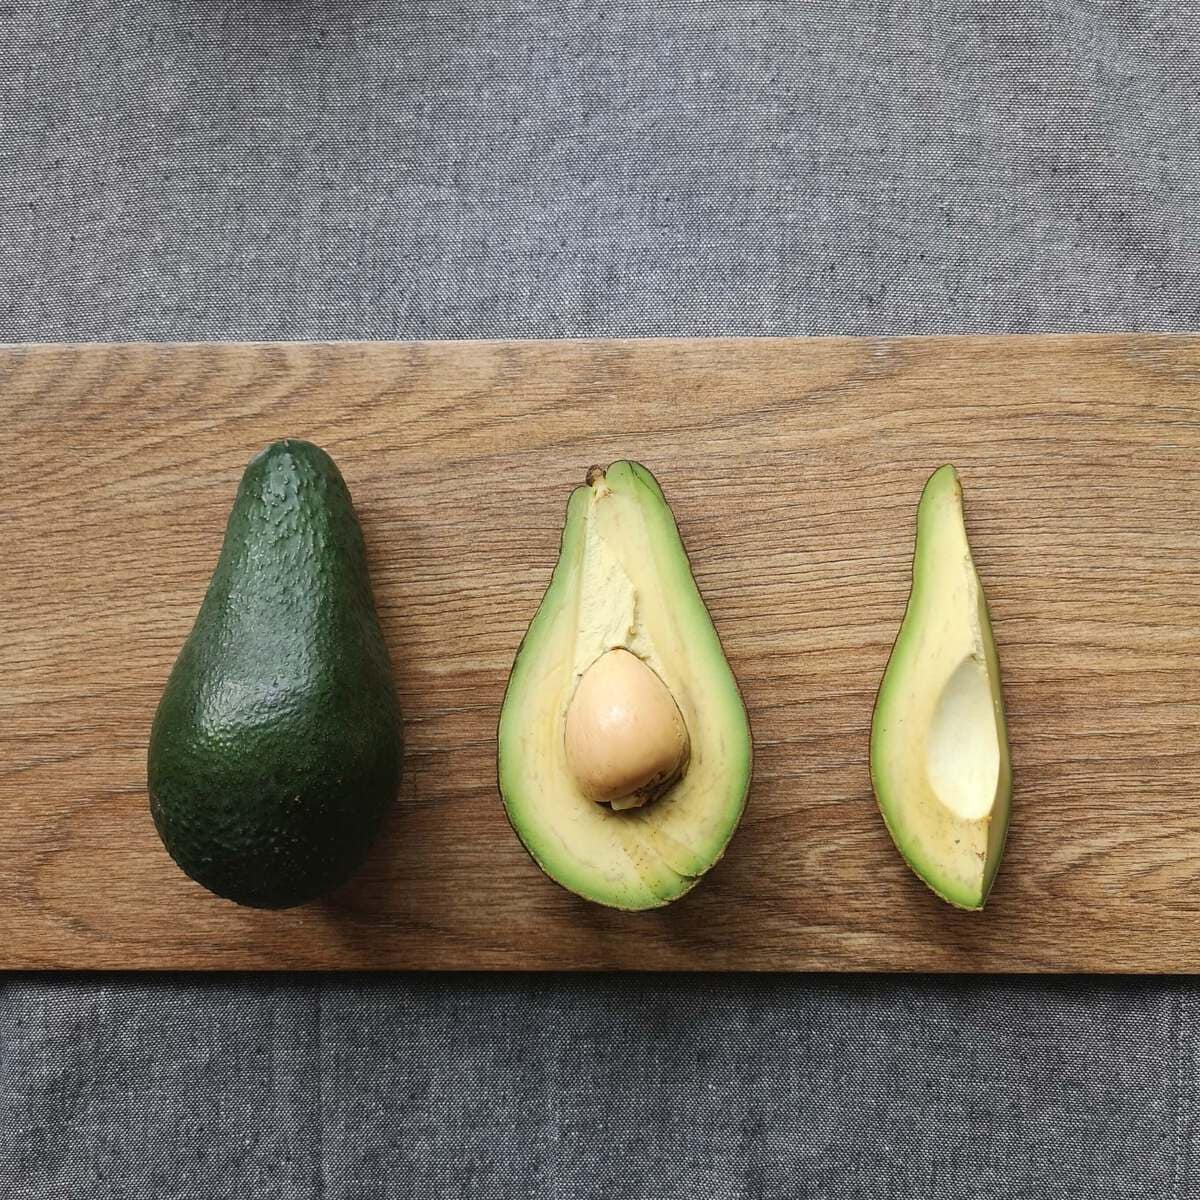 How to Store Avocados and Increase Their Shelf Life - Listonic